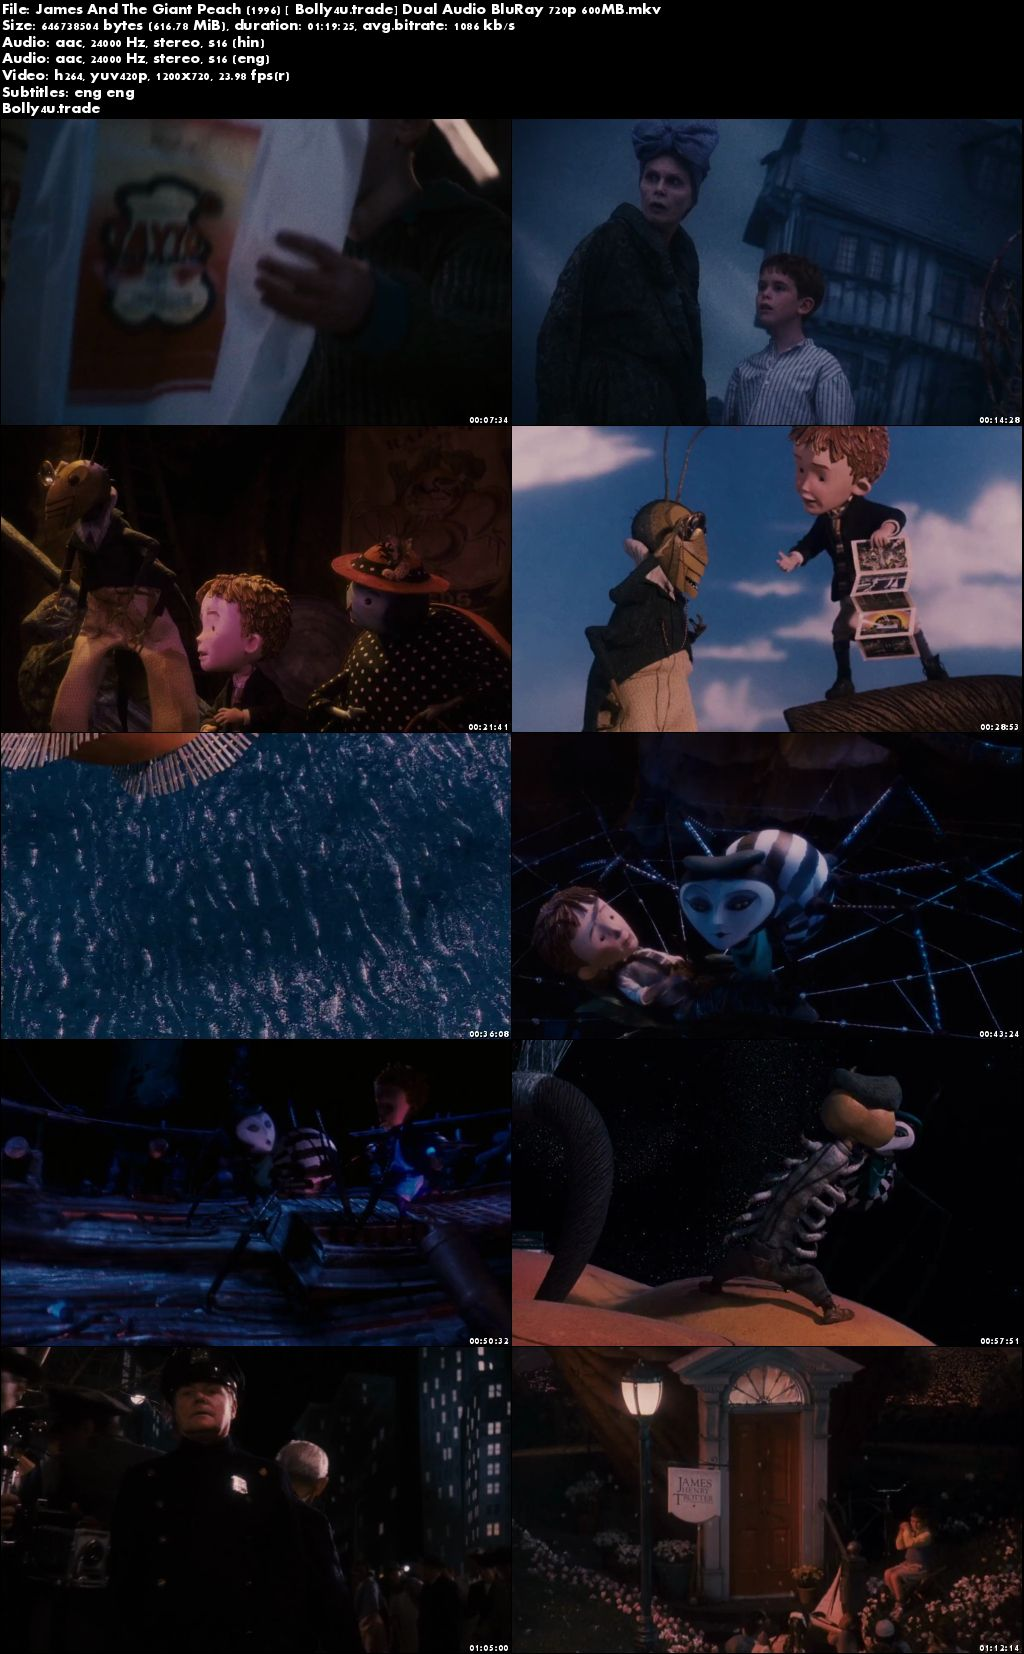 James And The Giant Peach 1996 BRRip 250MB Hindi Dual Audio 480p Download